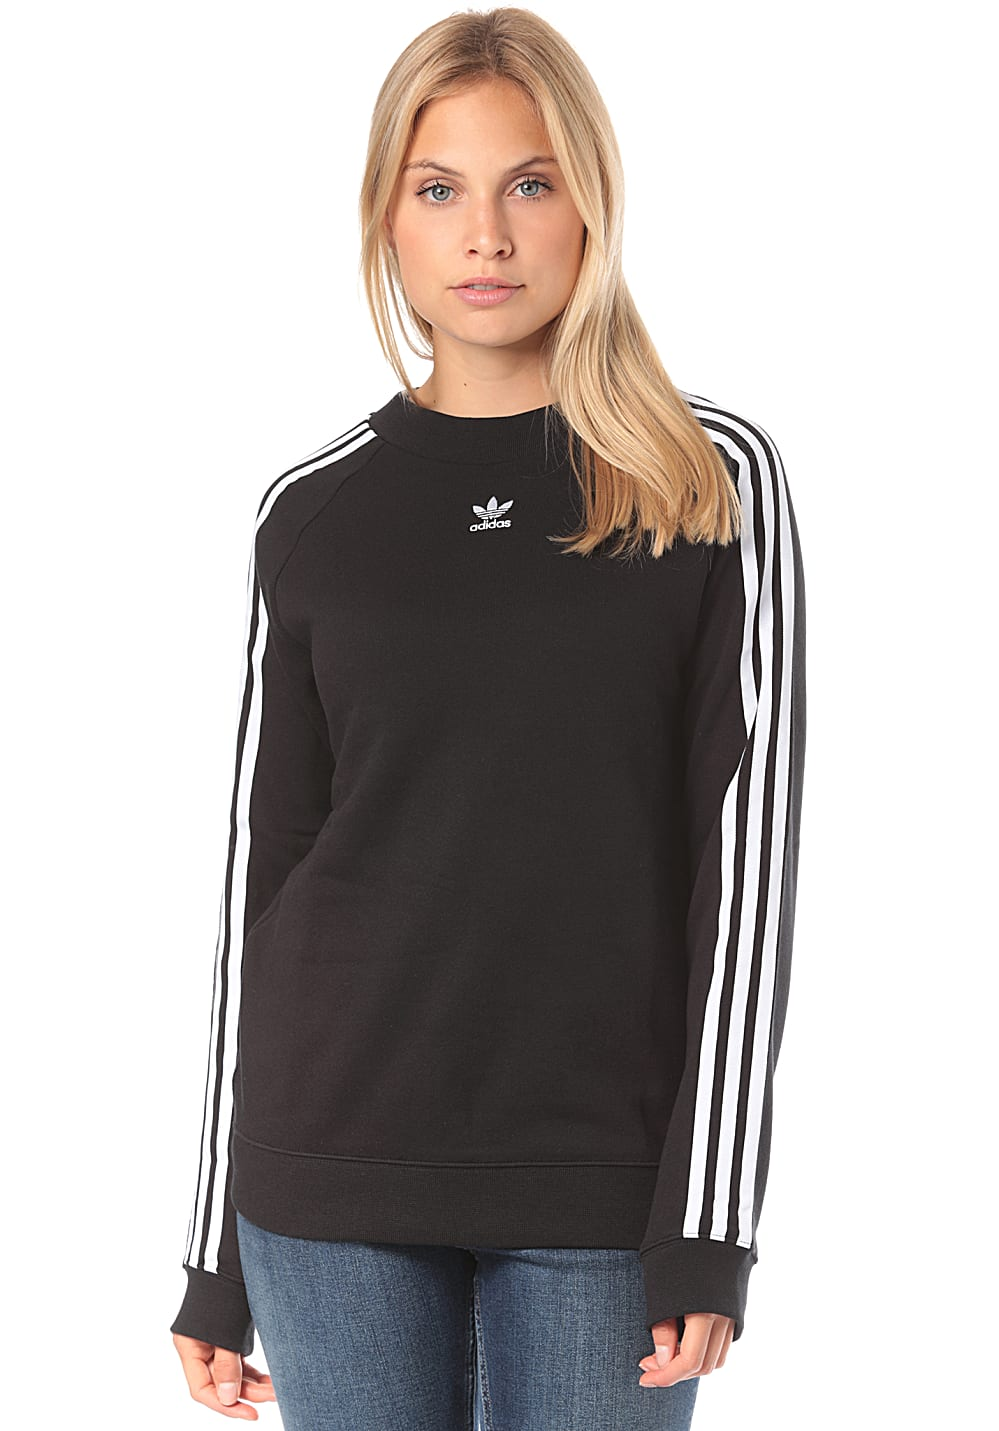 ADIDAS ORIGINALS Trefoil Crew Sweatshirt for Women Black